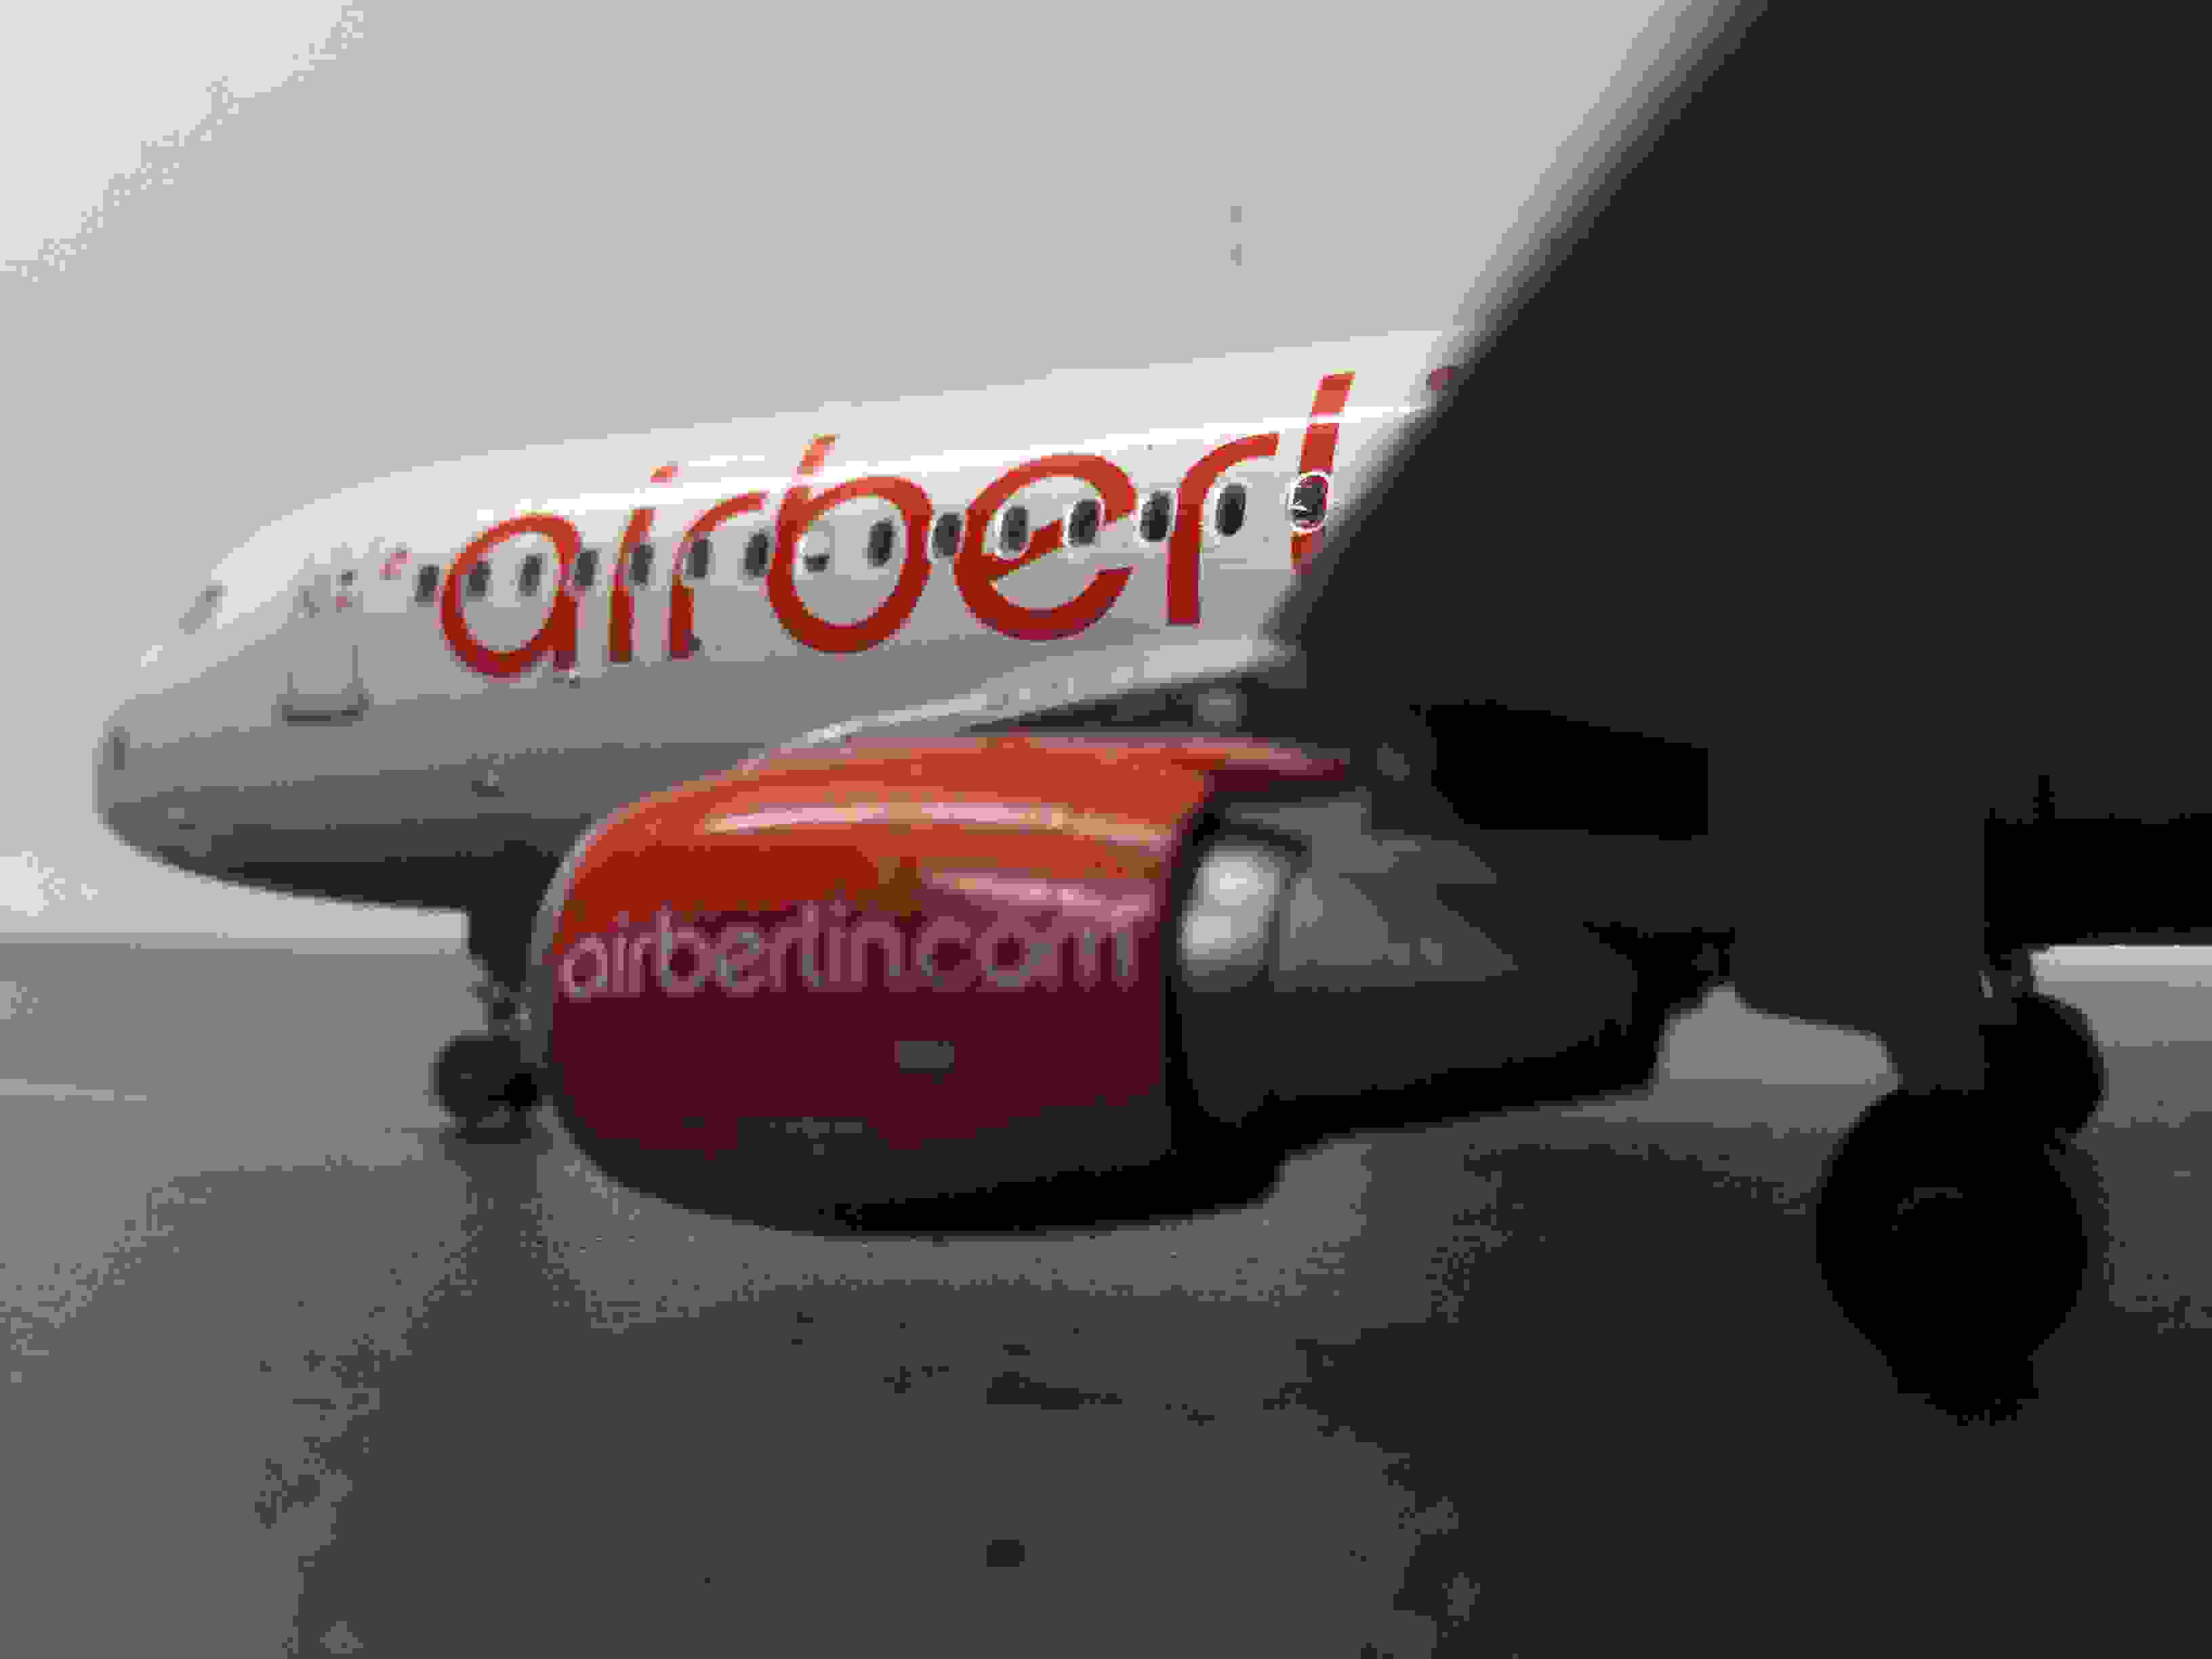 Poker rond airberlin